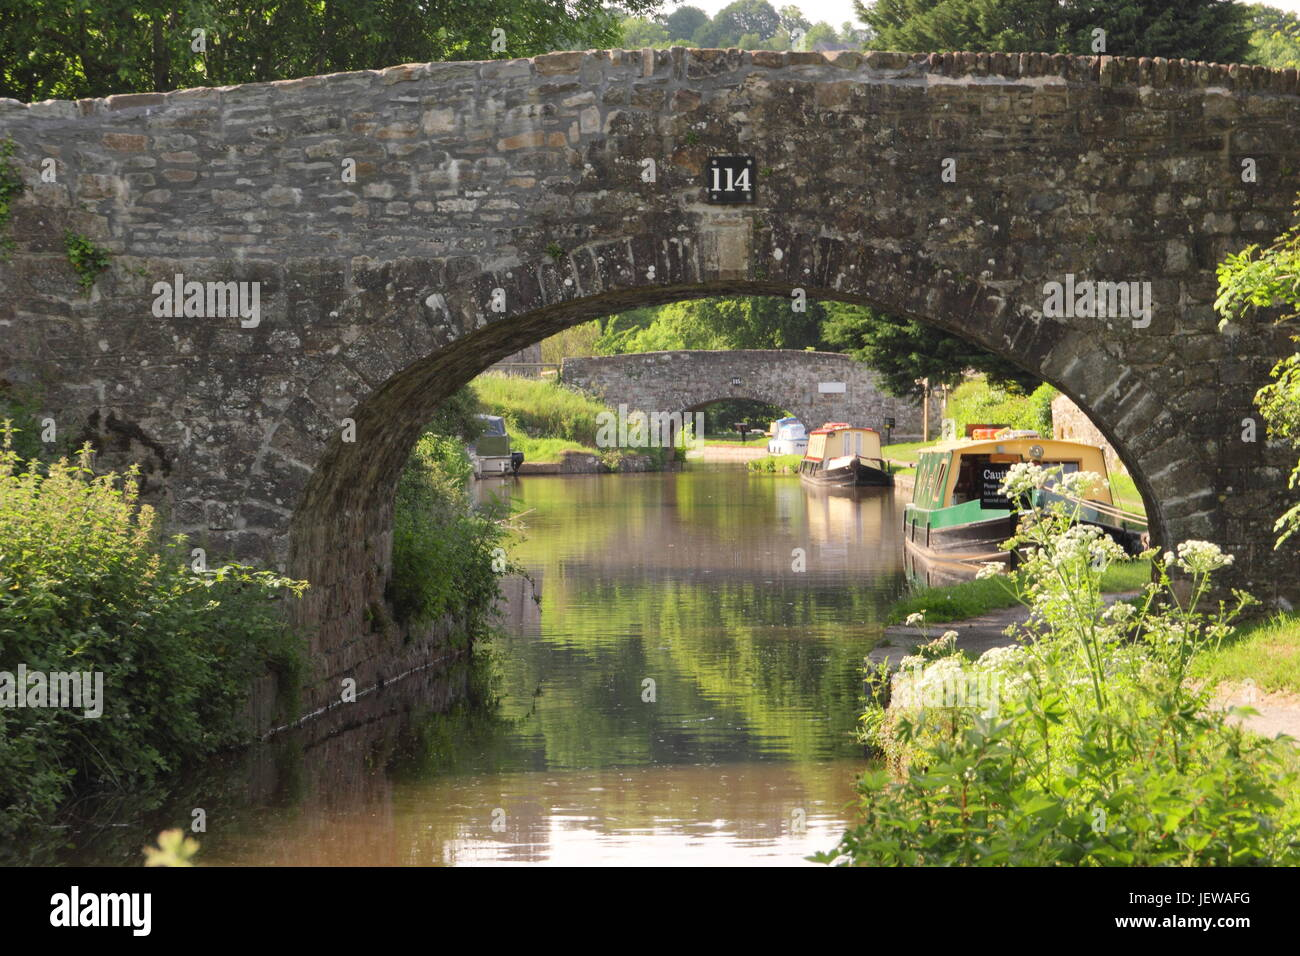 Narrowboats moored on the Monmouthshire and Brecon canal near Llangattock, Brecon Beacons, Powys, Wales -  June - Stock Image